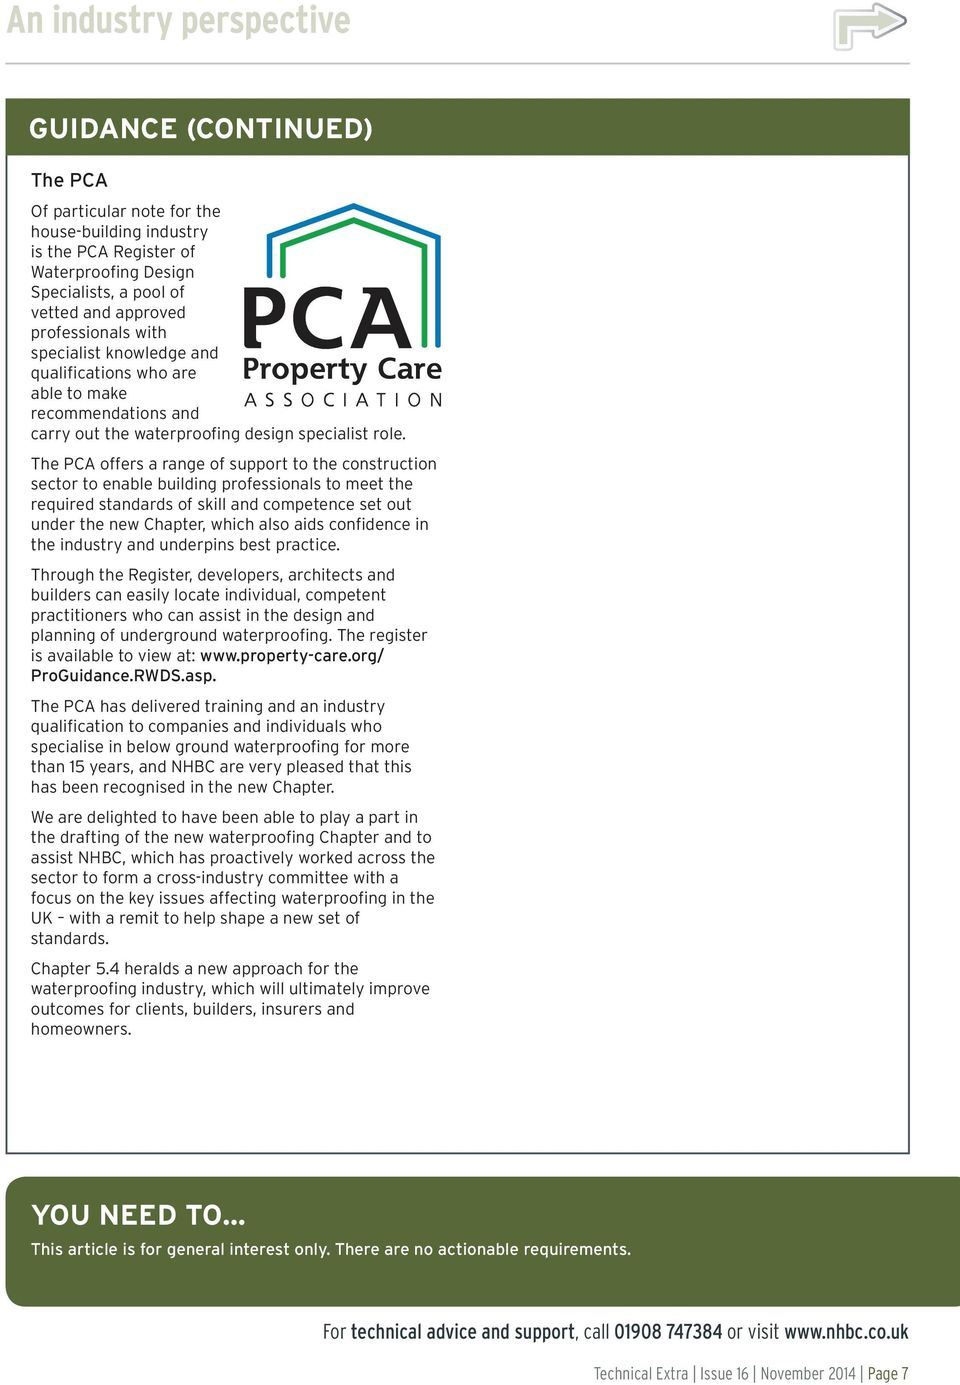 The PCA offers a range of support to the construction sector to enable building professionals to meet the required standards of skill and competence set out under the new Chapter, which also aids